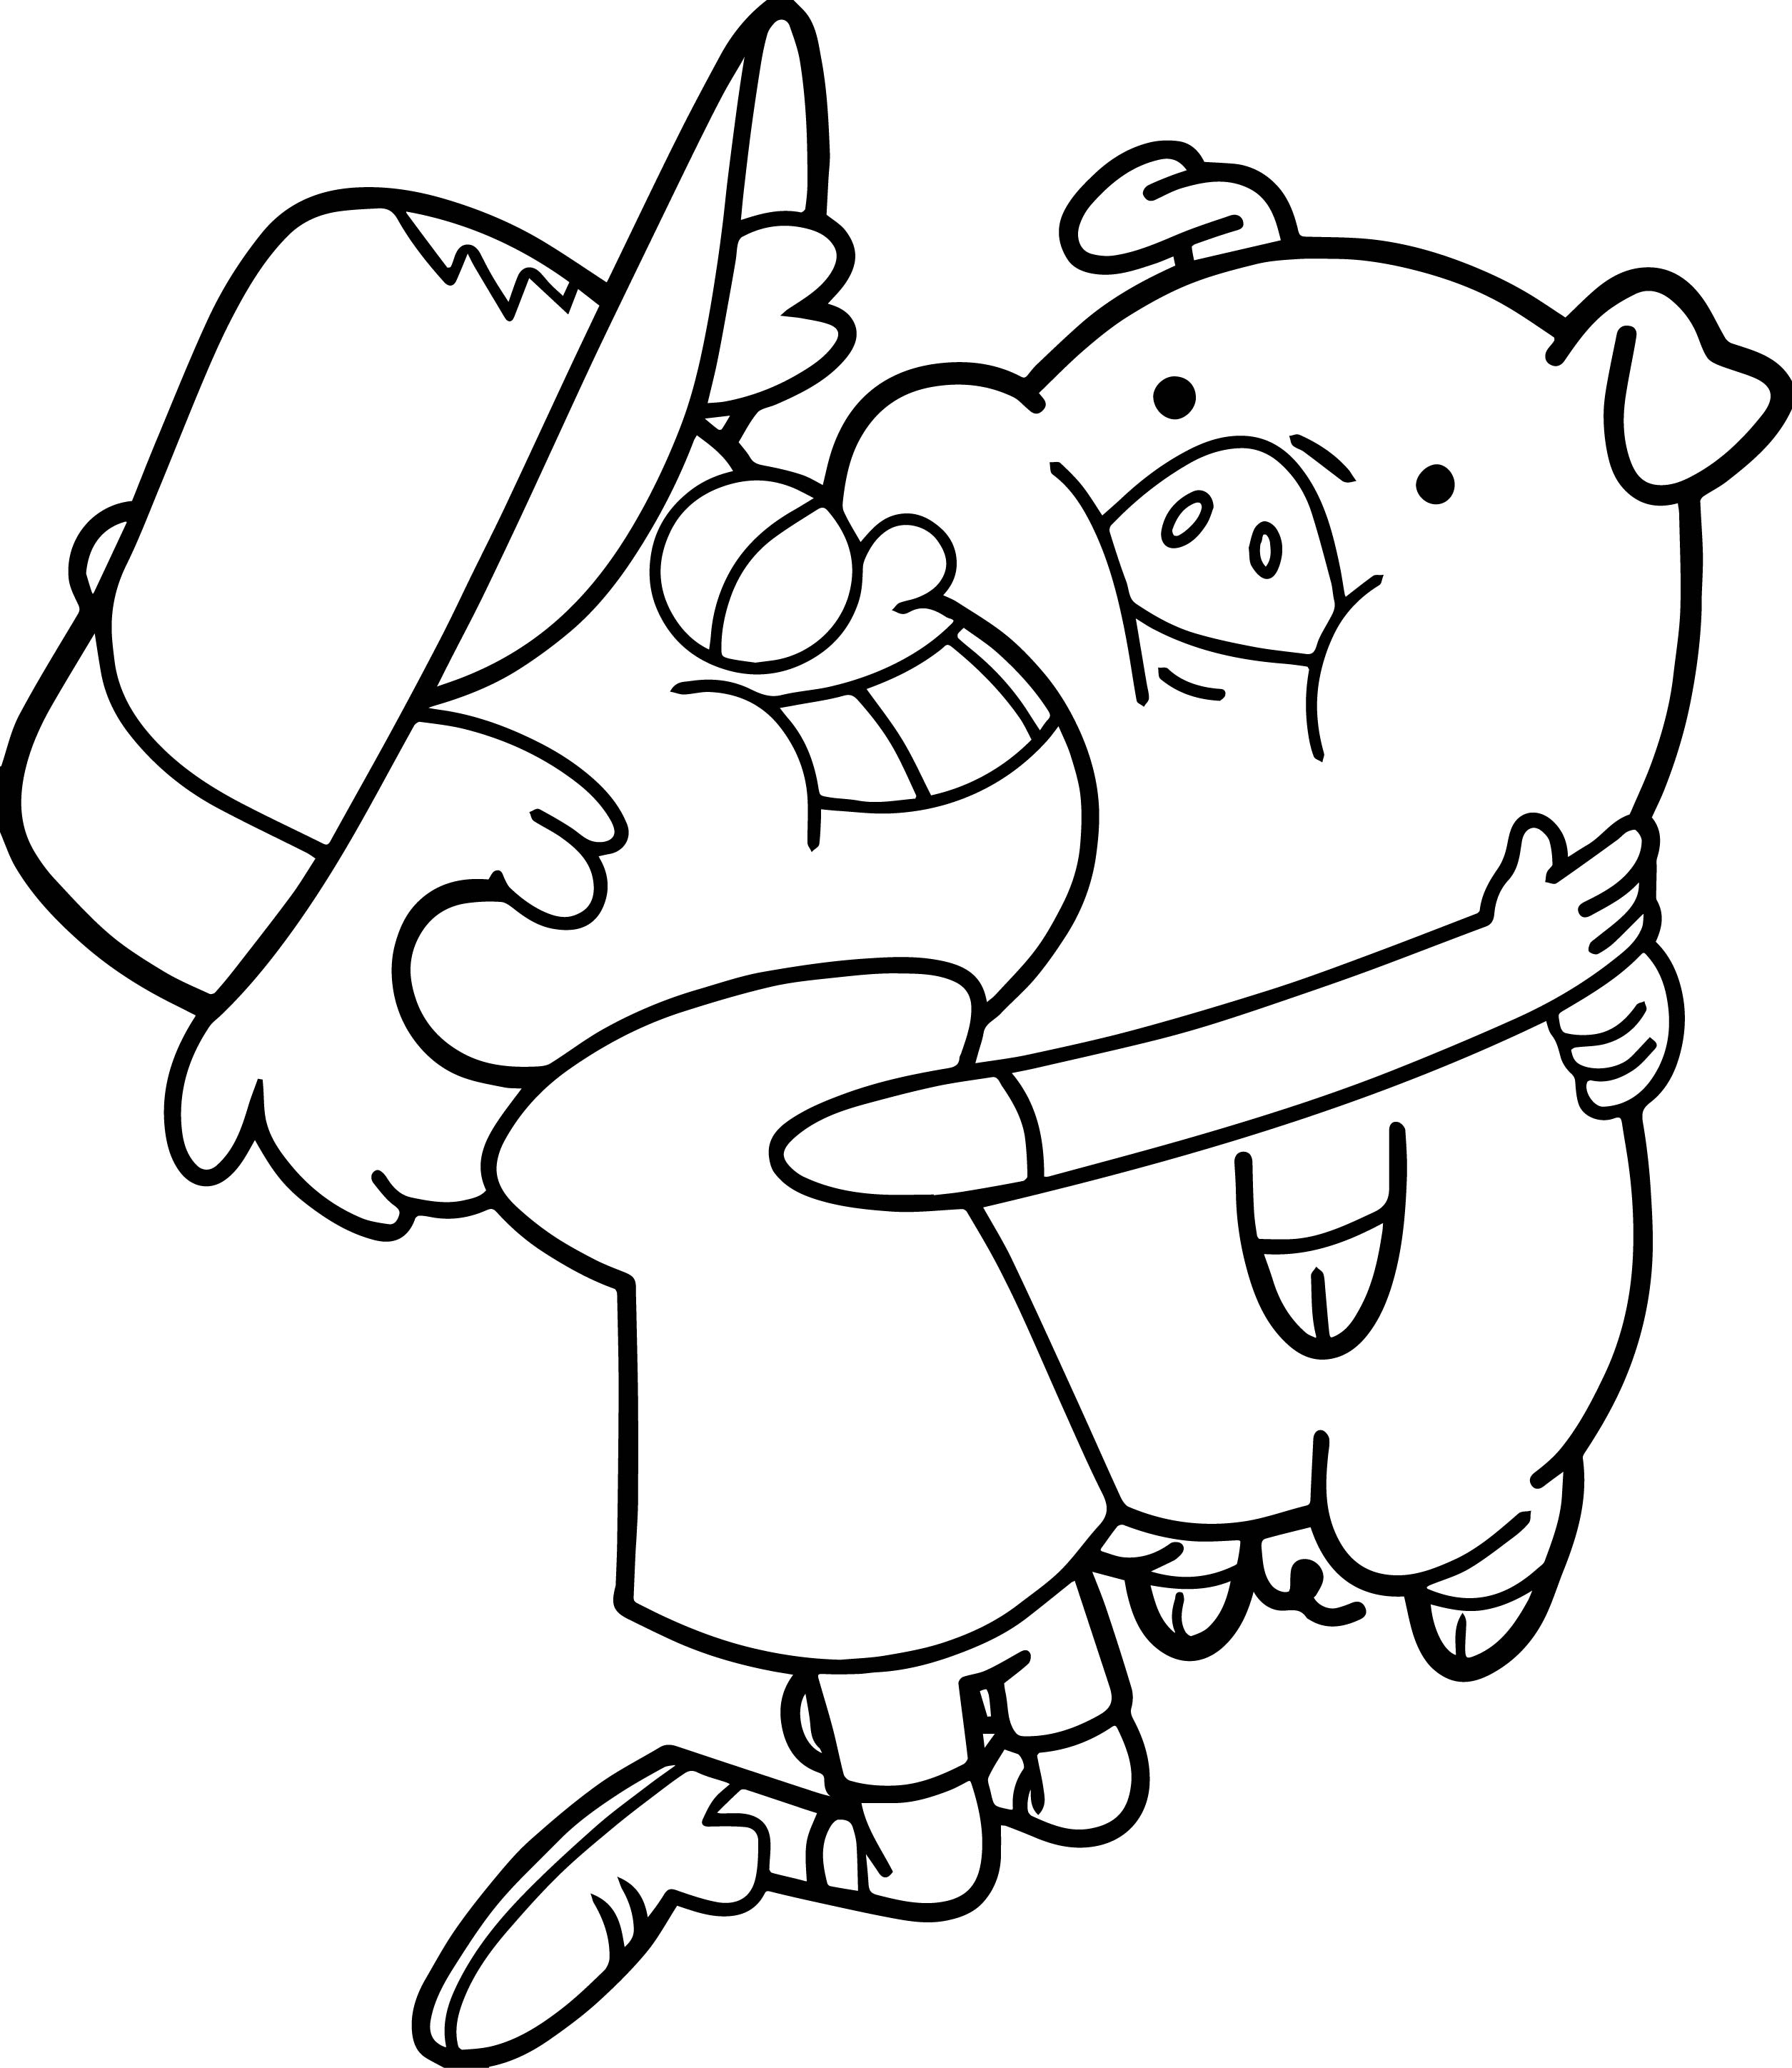 friends coloring page friendship coloring pages best coloring pages for kids page friends coloring